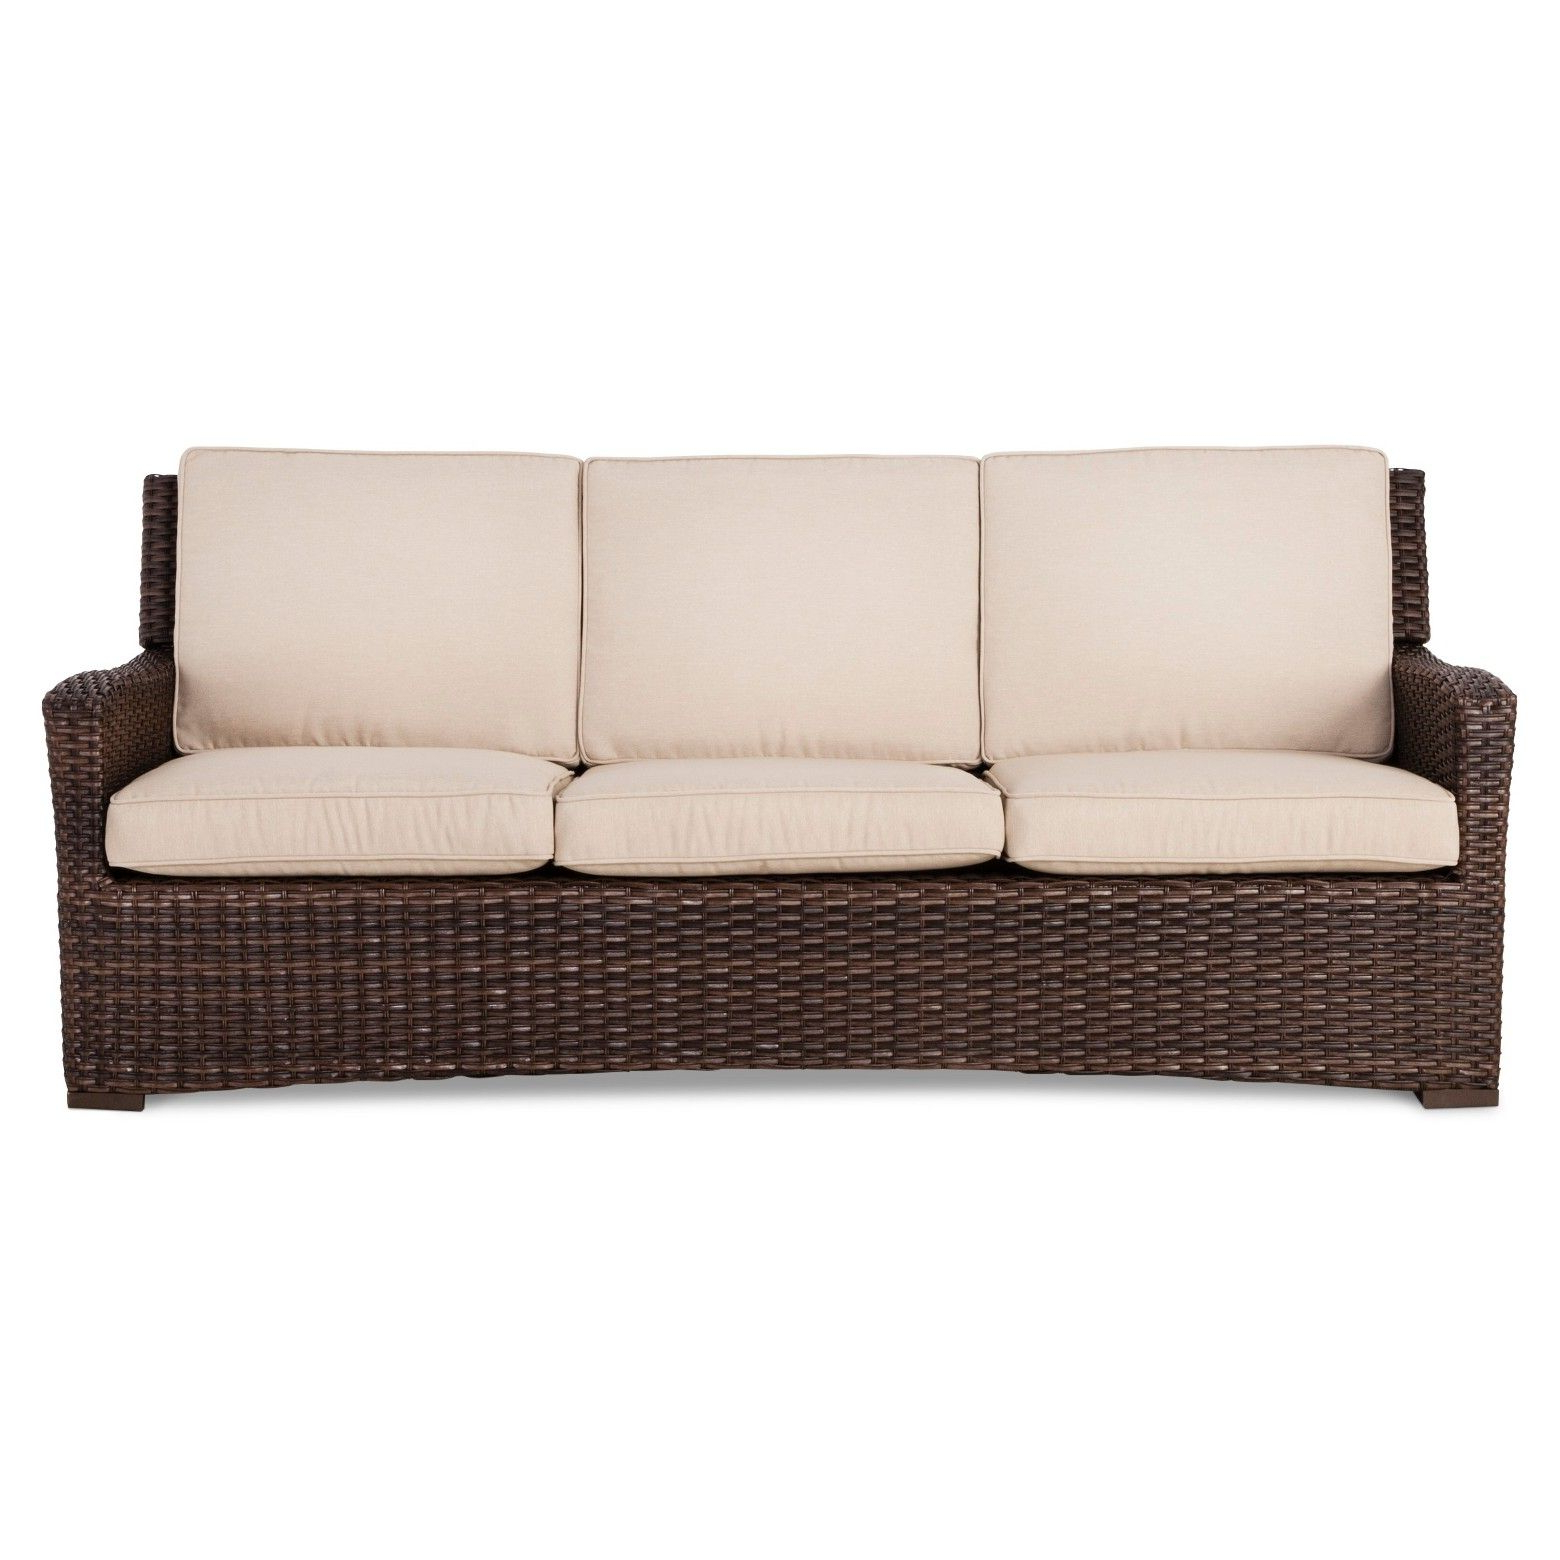 Popular Astrid Wicker Patio Sofas With Cushions Pertaining To Halsted Wicker Patio Sofa With Cushions – Threshold™ (View 15 of 25)